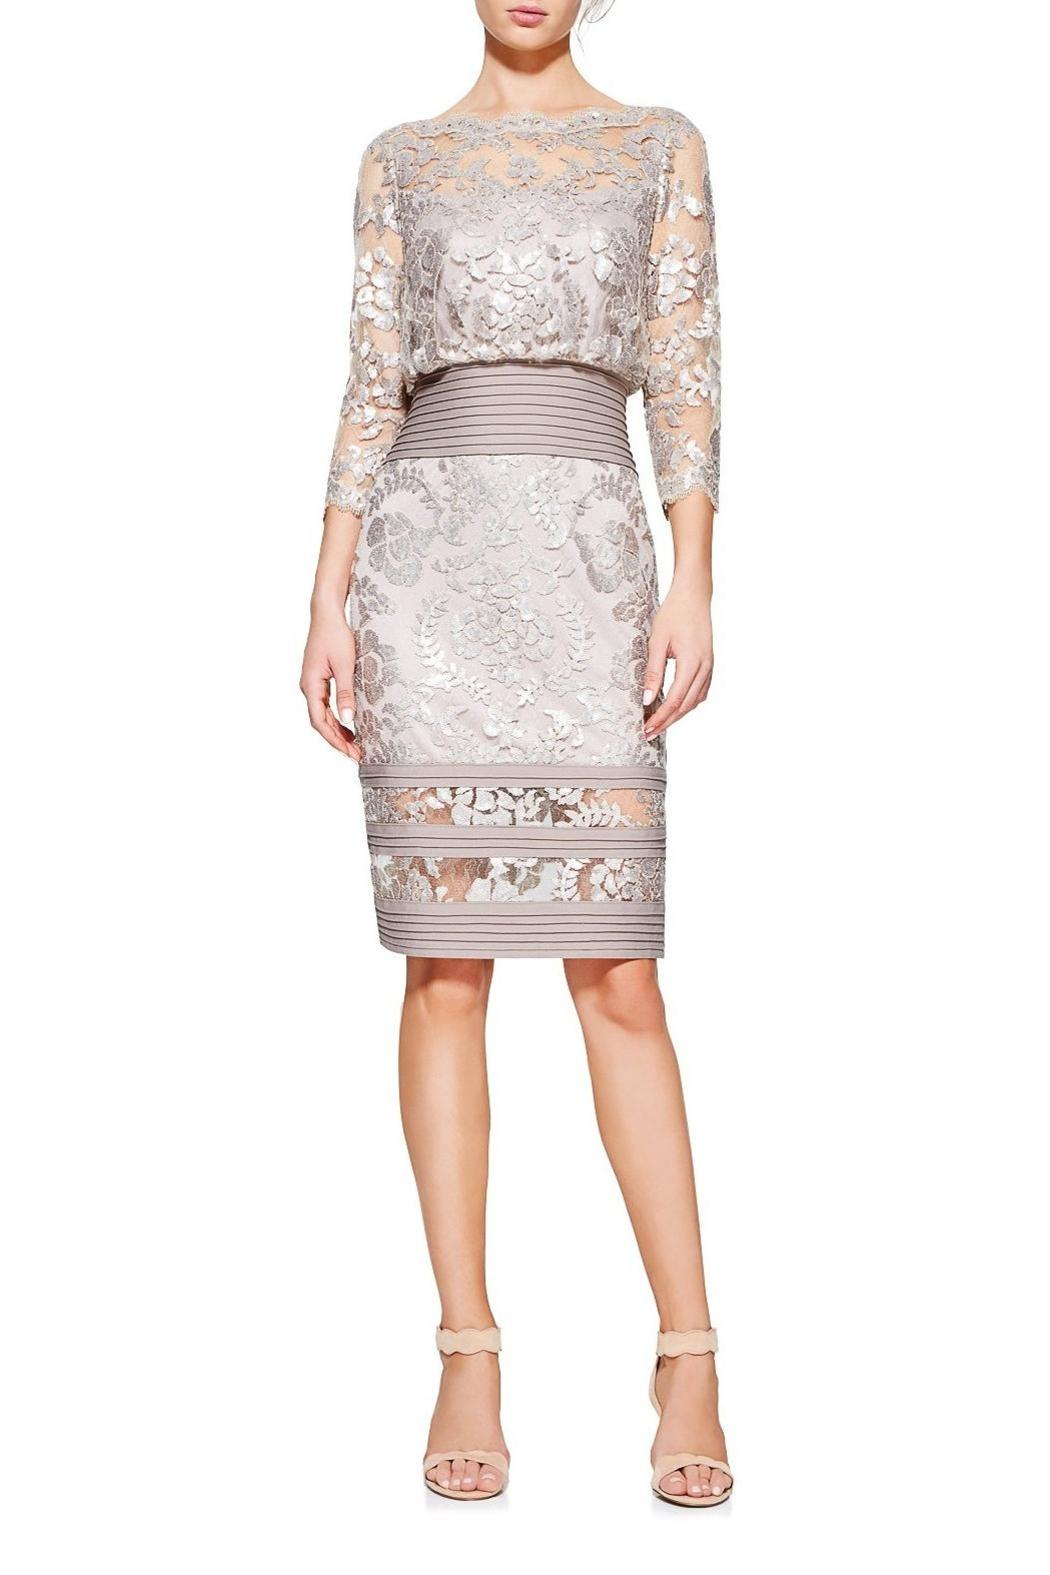 Tadashi Shoji Sequin Lace Dress from New Jersey by District 5 ...